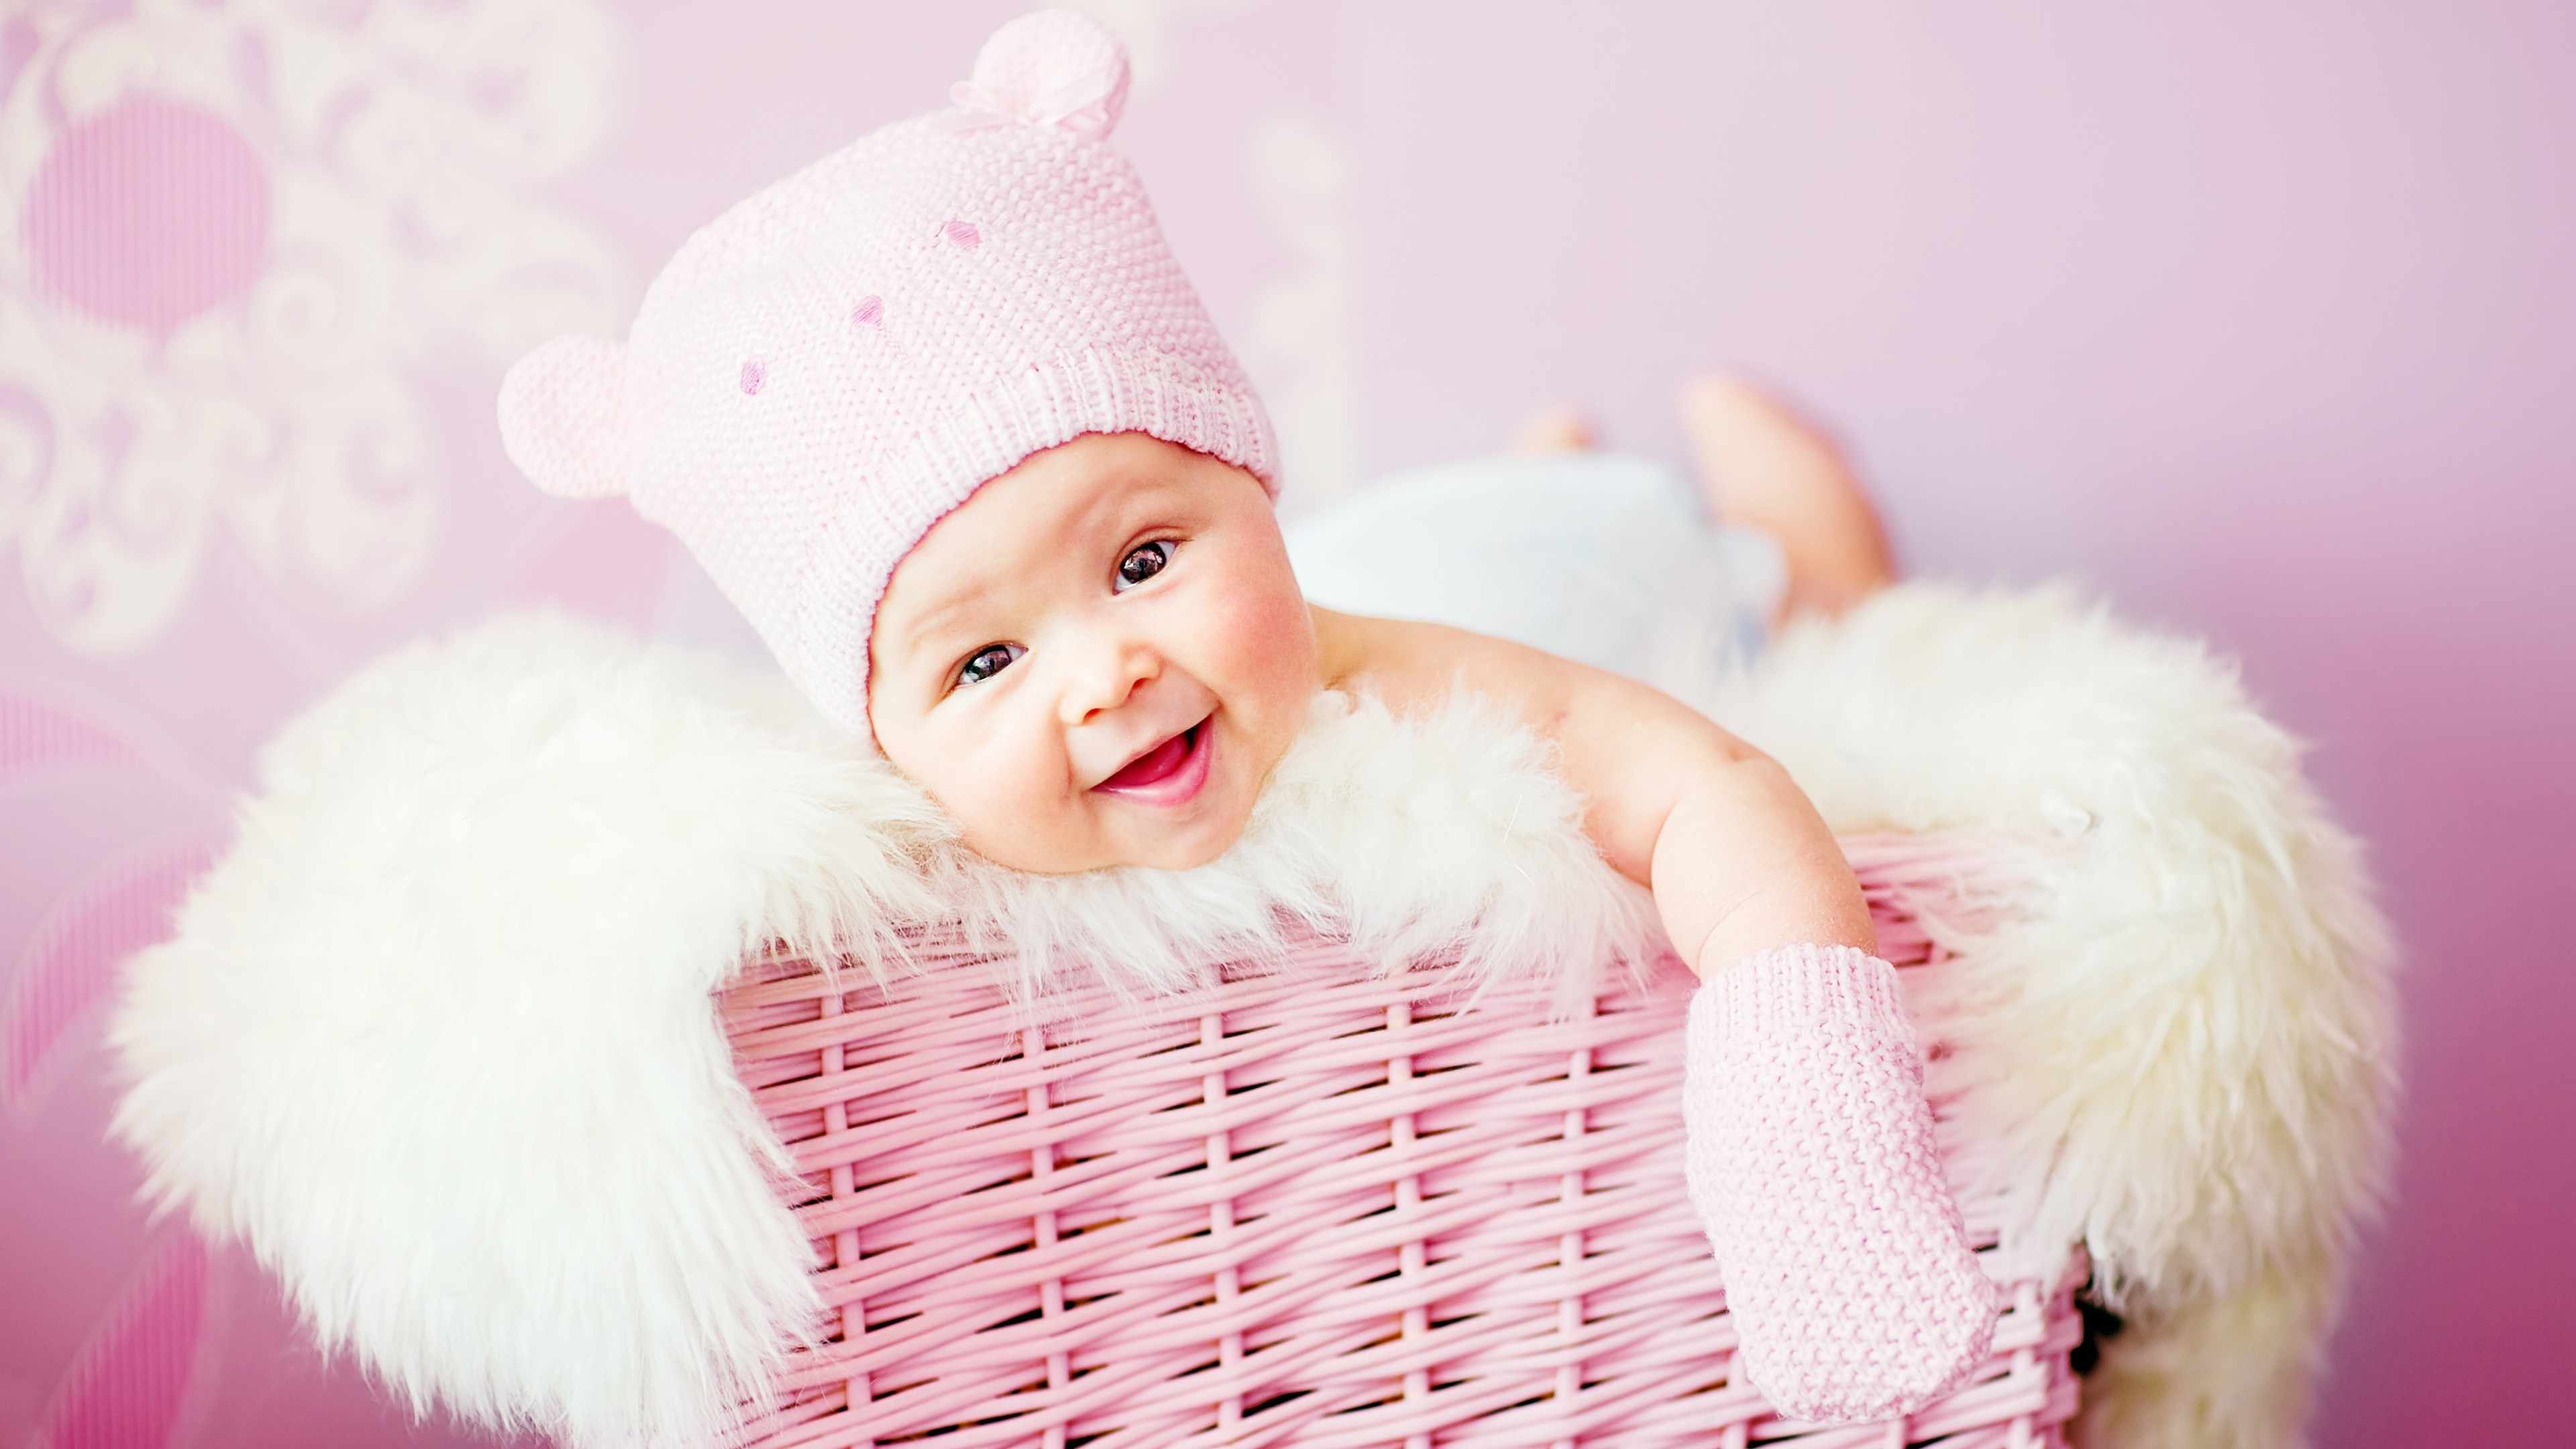 3840x2160 Cute Baby Wallpapers Cute Babies Pictures Cute Baby Girl .